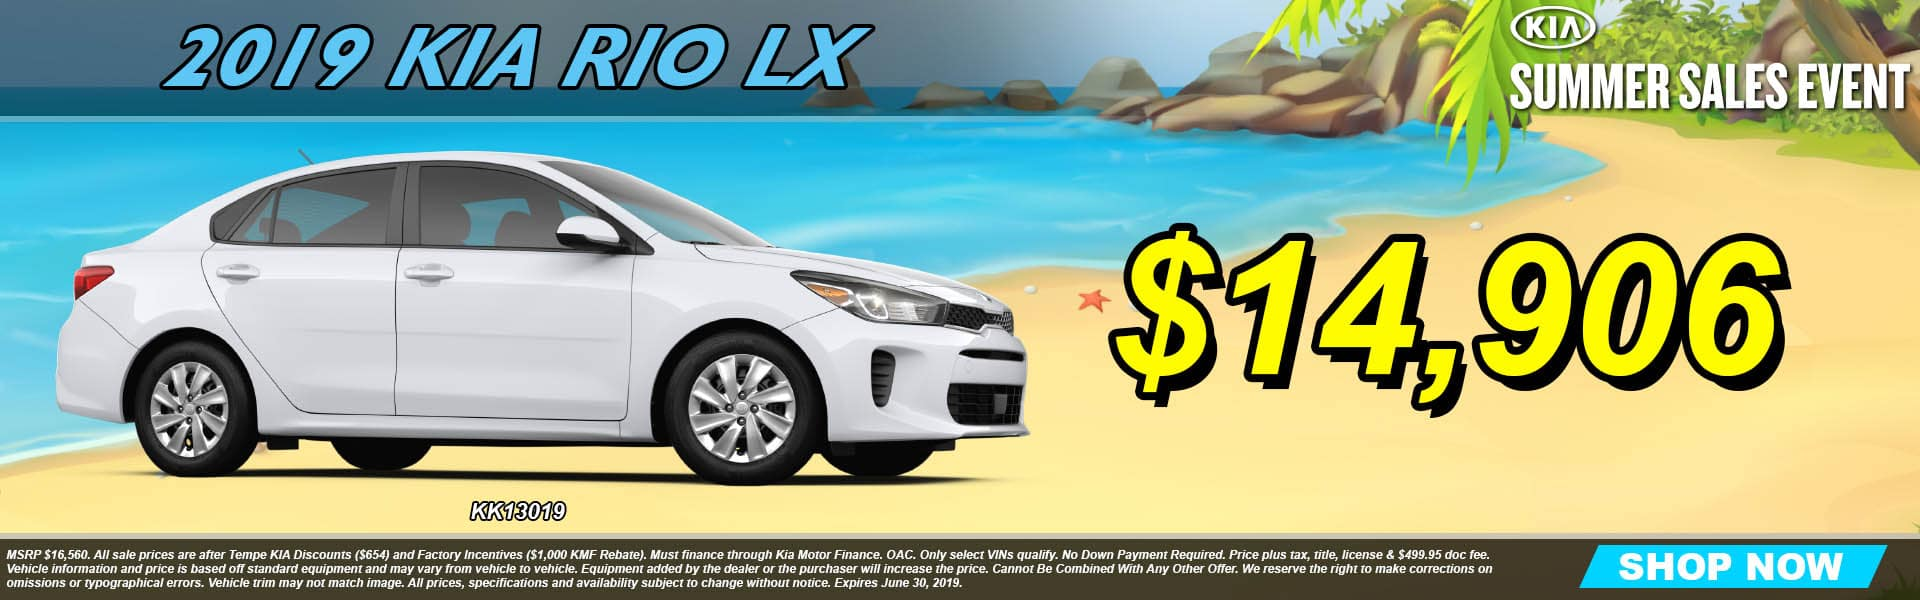 2019 Kia Rio LX Summer Sales Event